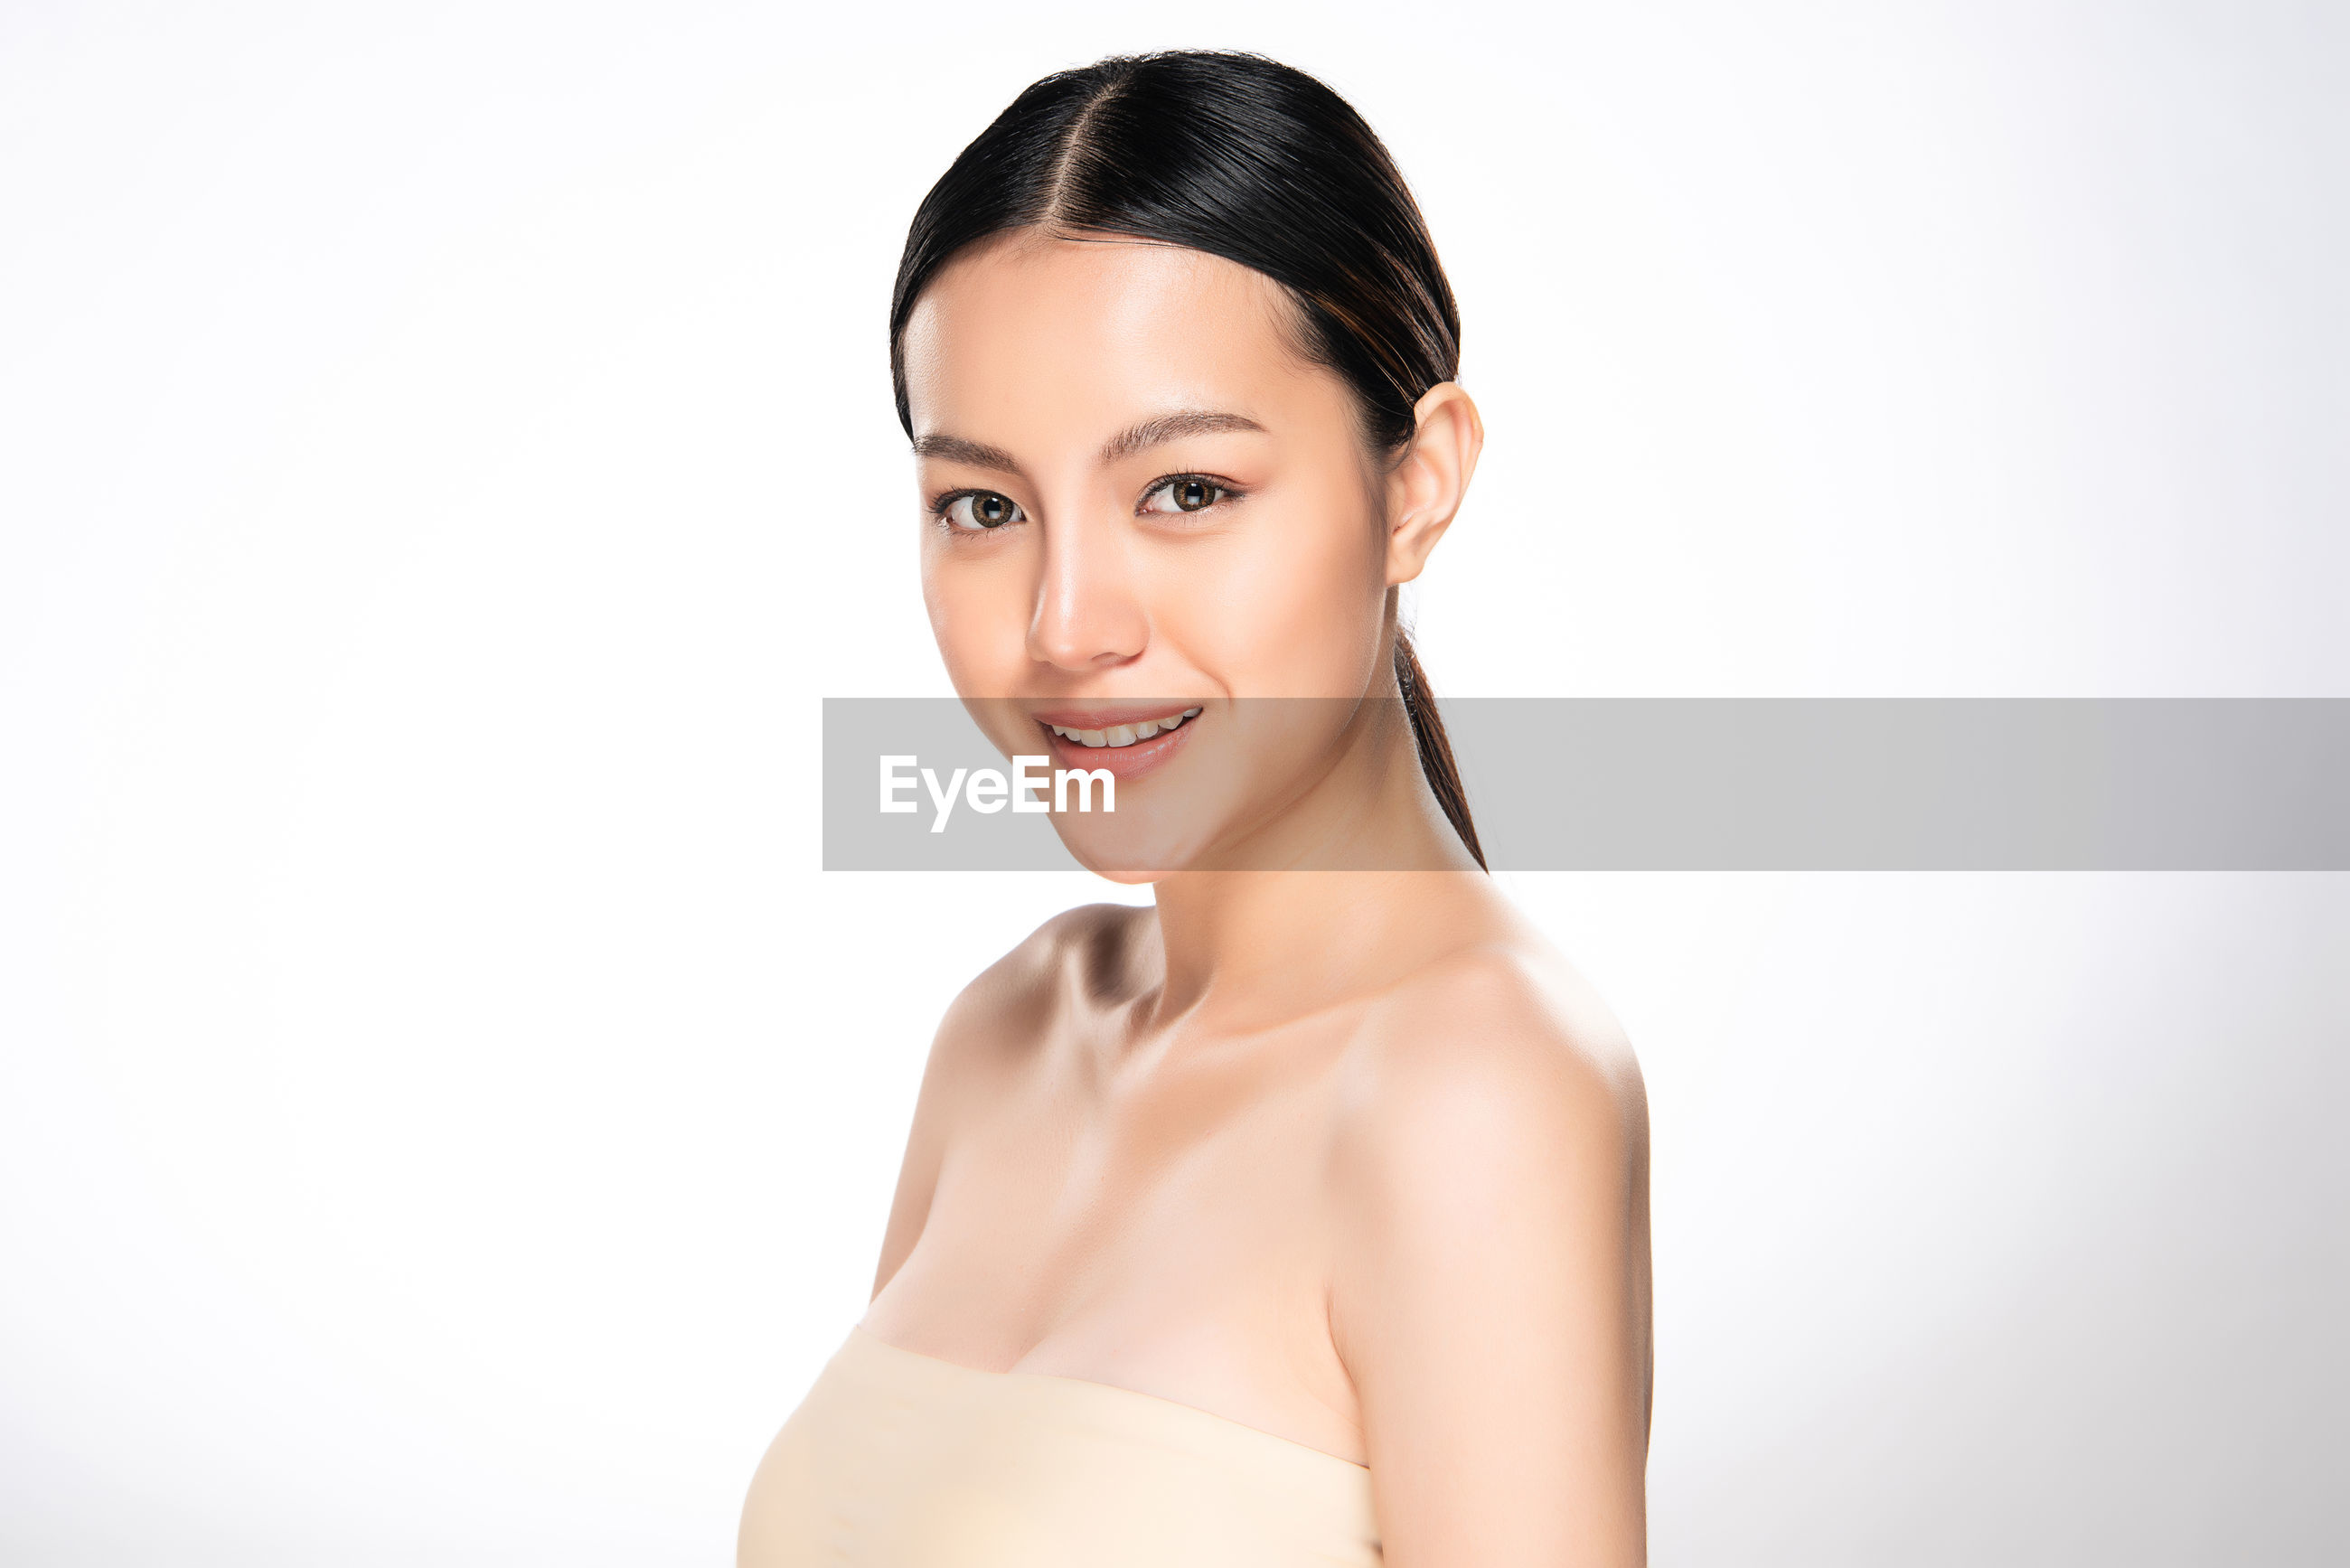 Portrait of smiling beautiful young woman against white background